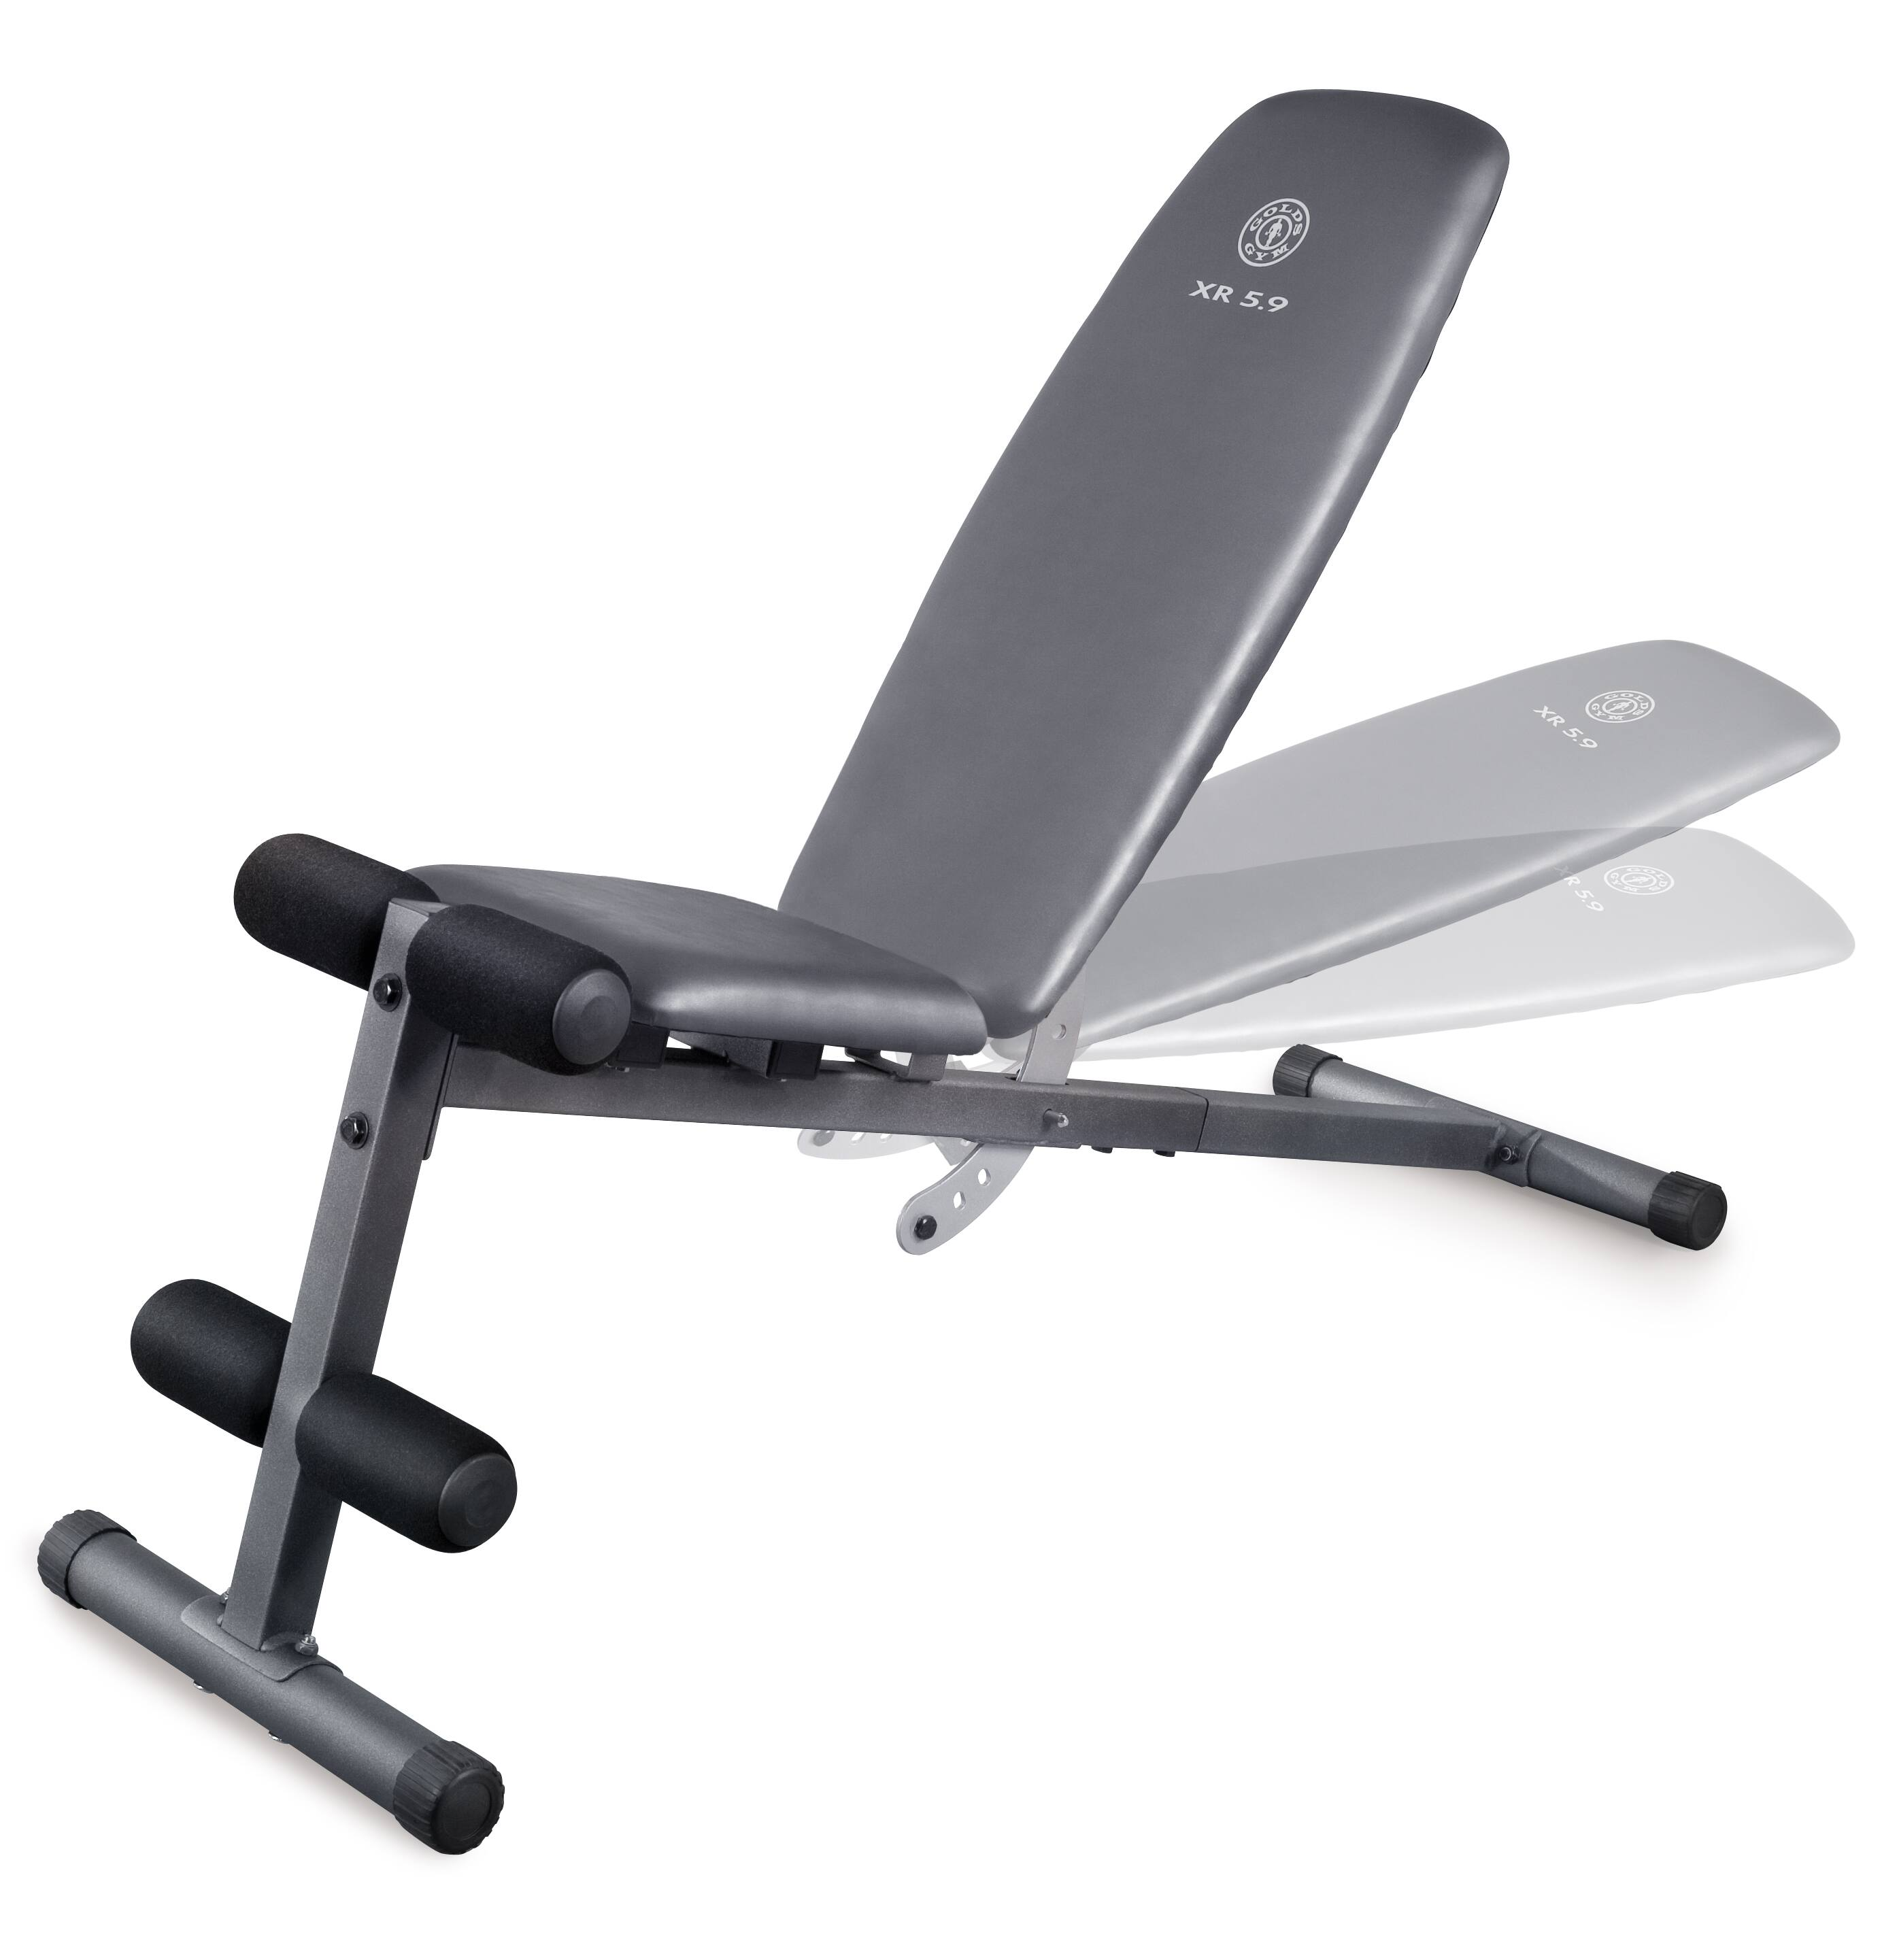 Weider XR 5.9 Adjustable Slant Workout Bench with 4-Roll Leg Lockdown and Exercise Chart $49